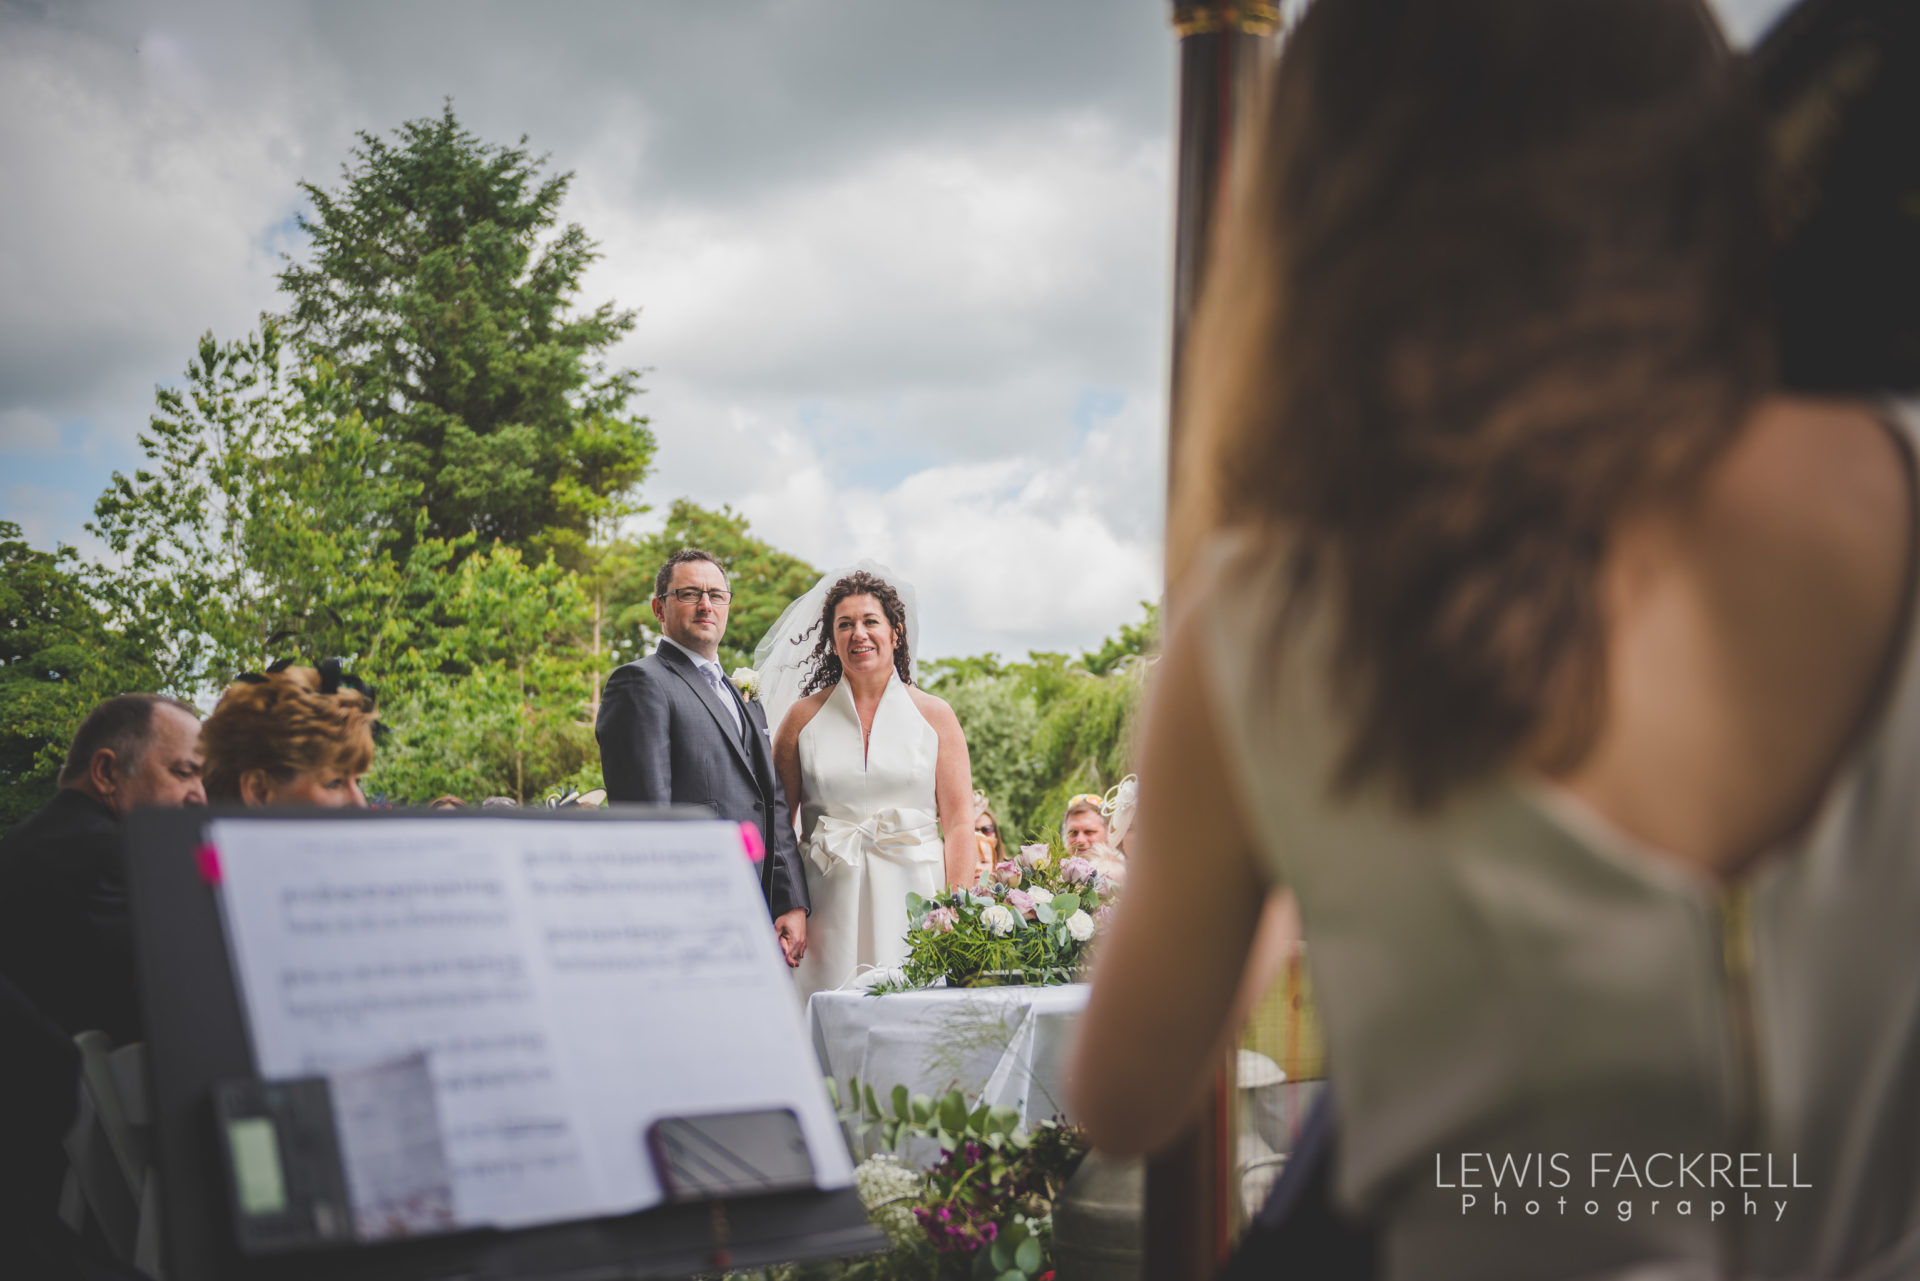 Lewis-Fackrell-Photography-Wedding-Photographer-Cardiff-Swansea-Bristol-Newport-Pre-wedding-photoshoot-Rhian-Mark-Mansion-House-Llansteffan-Carmarthenshire--51